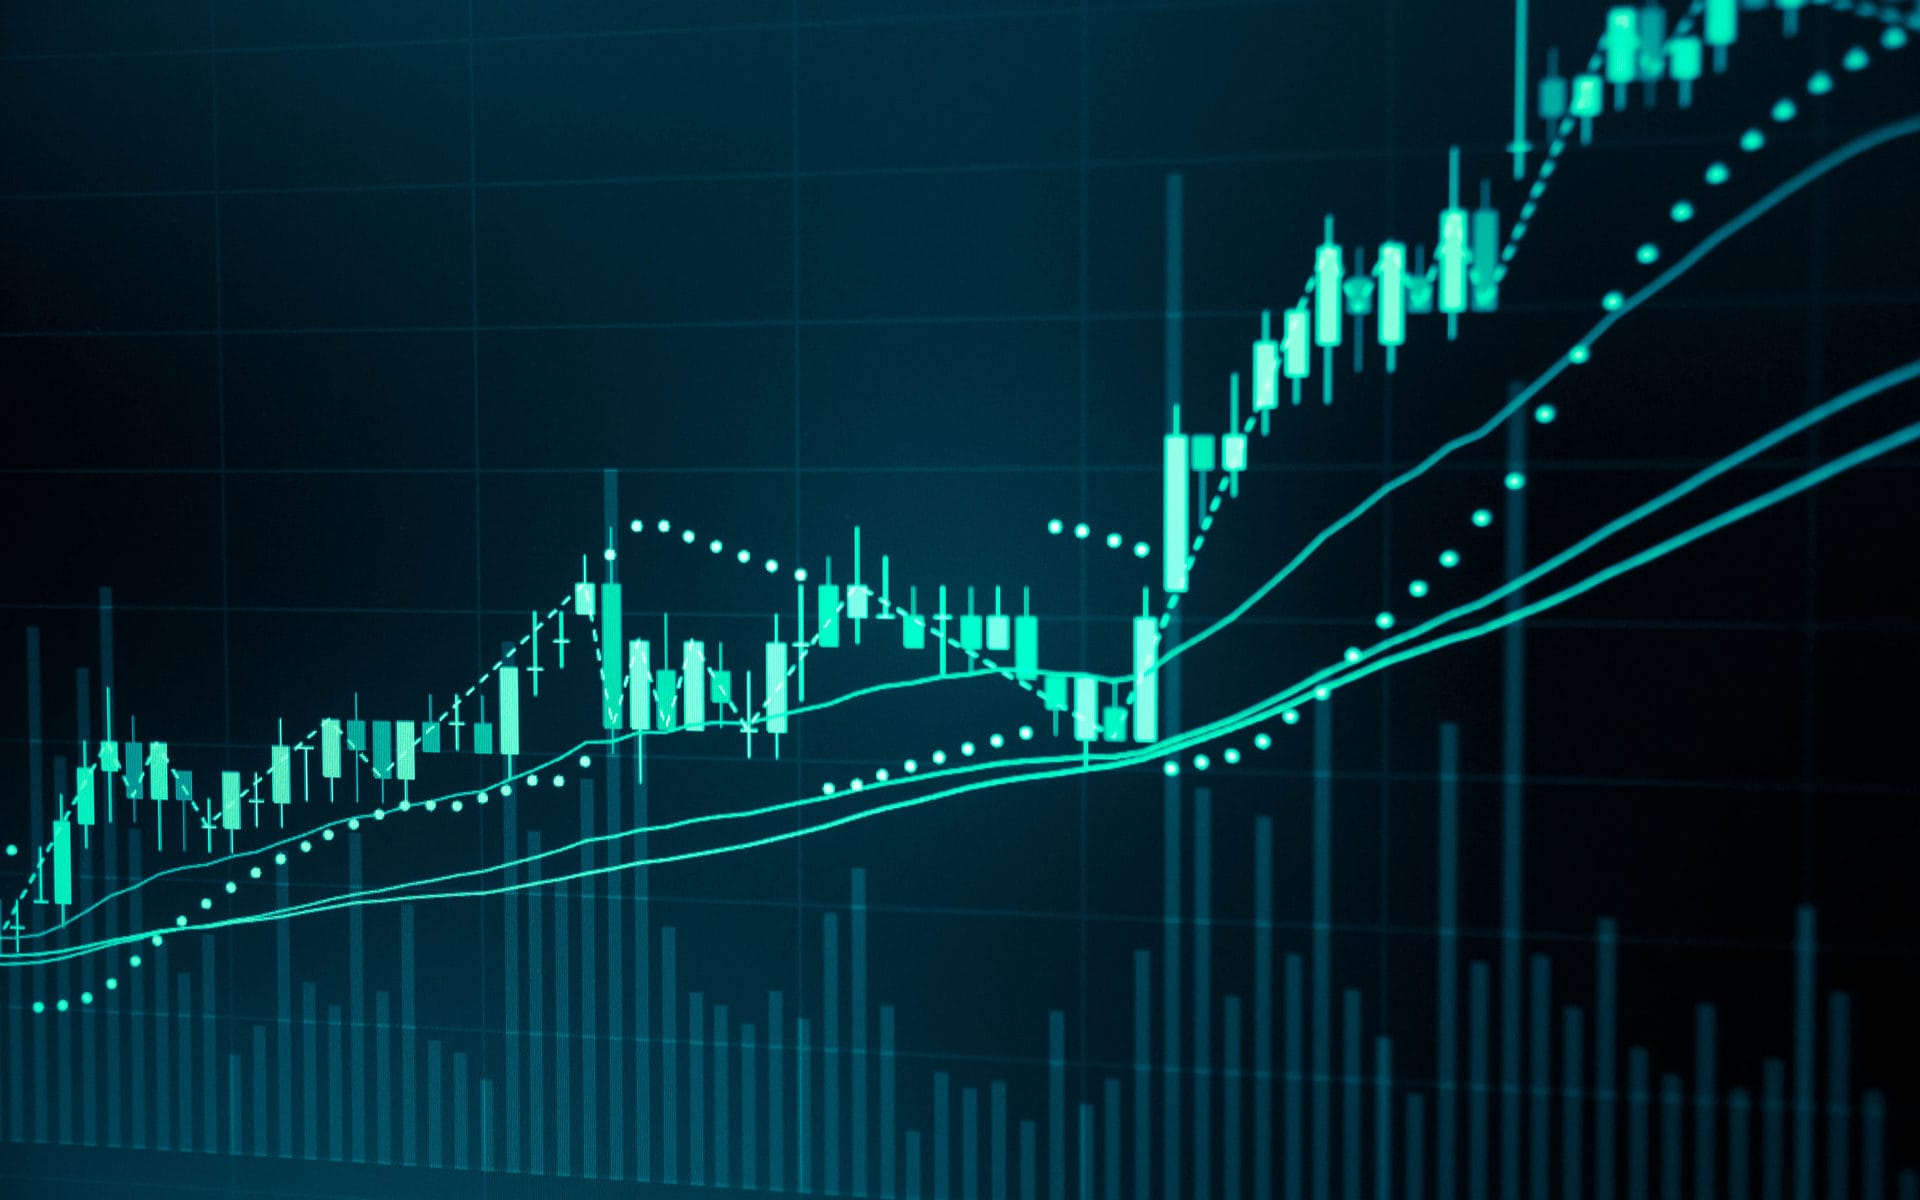 Bitcoin Price Analysis: Can Bybit Perpetual Futures Beat The Odds to $10,000?